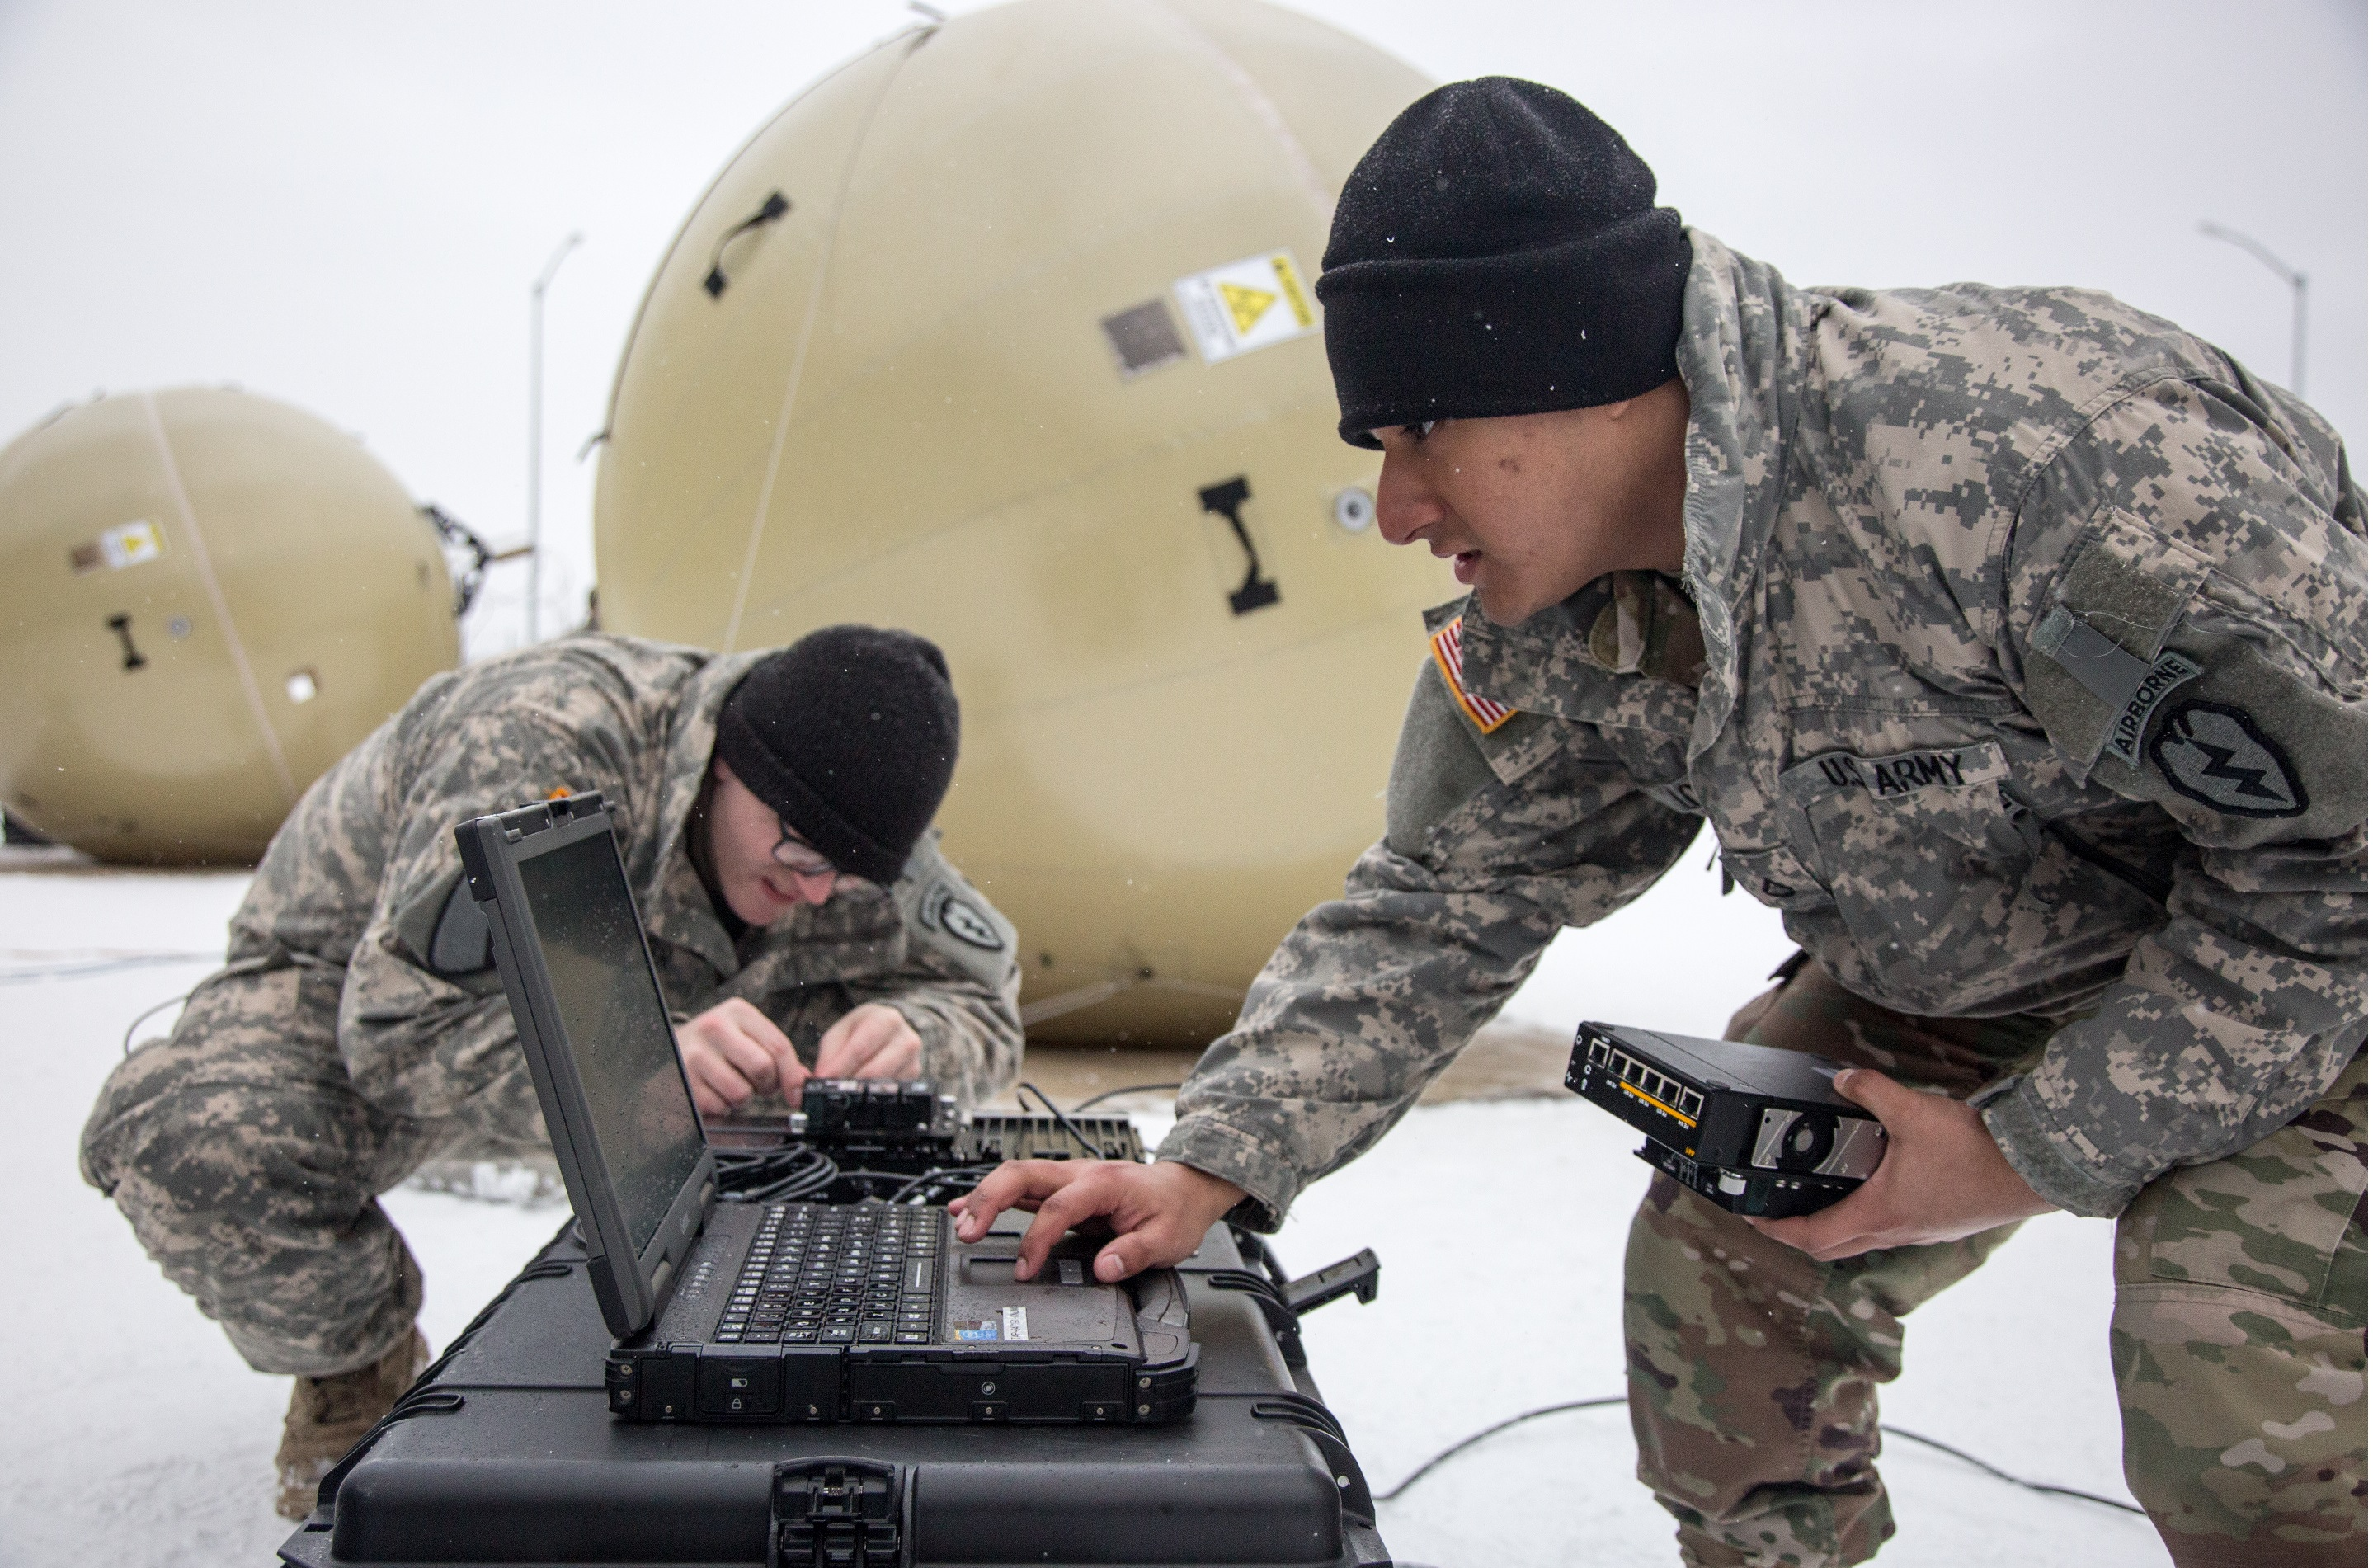 Soldiers from the 4th Infantry BCT (Airborne), 4/25, prepare for the March WIN-T T2C2 operational test at Joint Base Elmendorf-Richardson. The satellite communications system connects units at the edge of the battlefield to the Army's tactical network. (Photo by Staff Sgt. Pedro Garcia Bibian, 55th Signal Company (Combat Camera))